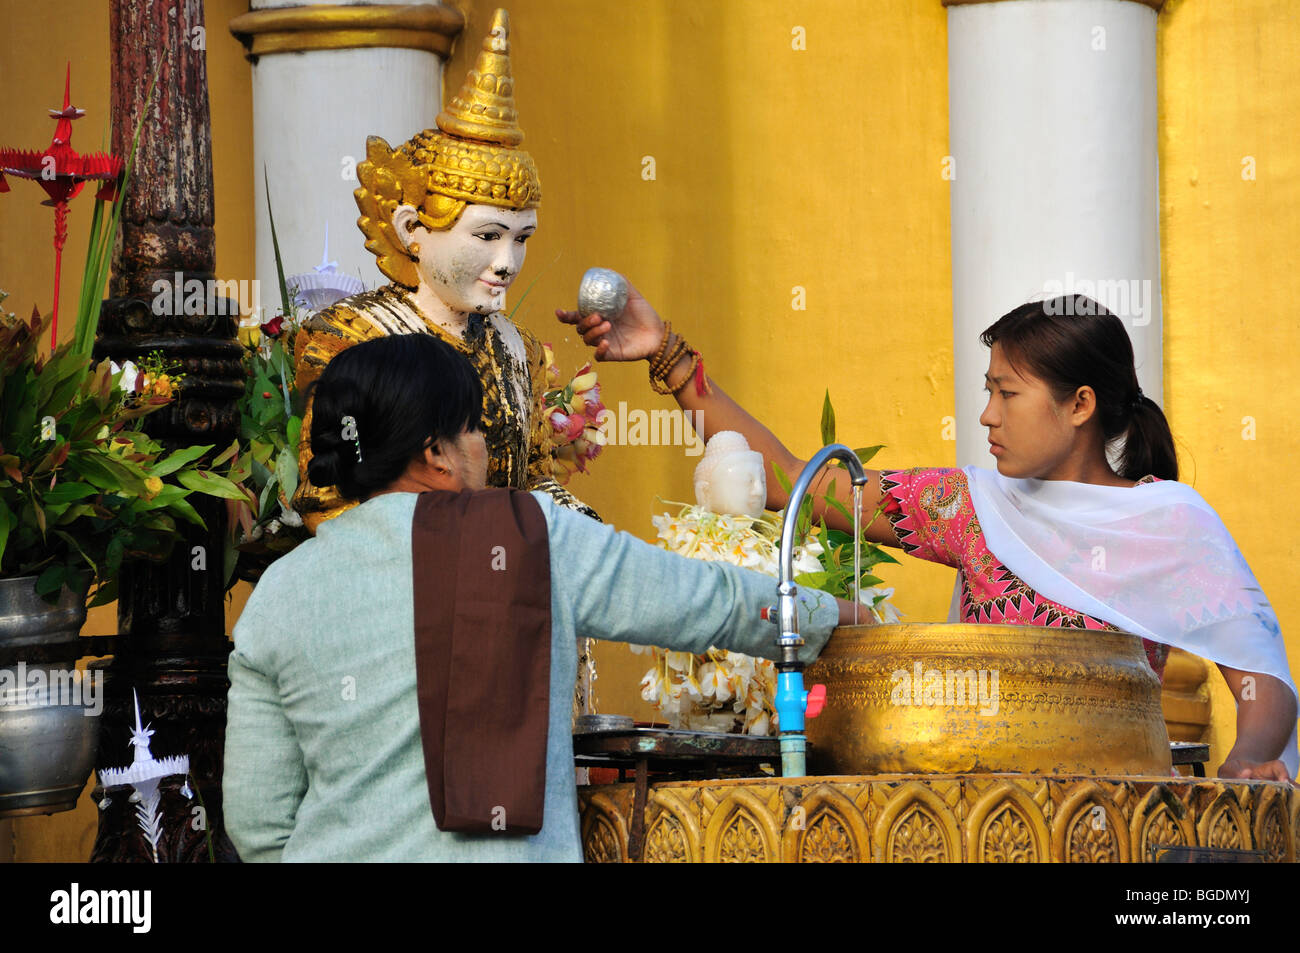 Women pouring water on Statue, Shwedagon Pagoda, Yangon, Burma, Myanmar - Stock Image